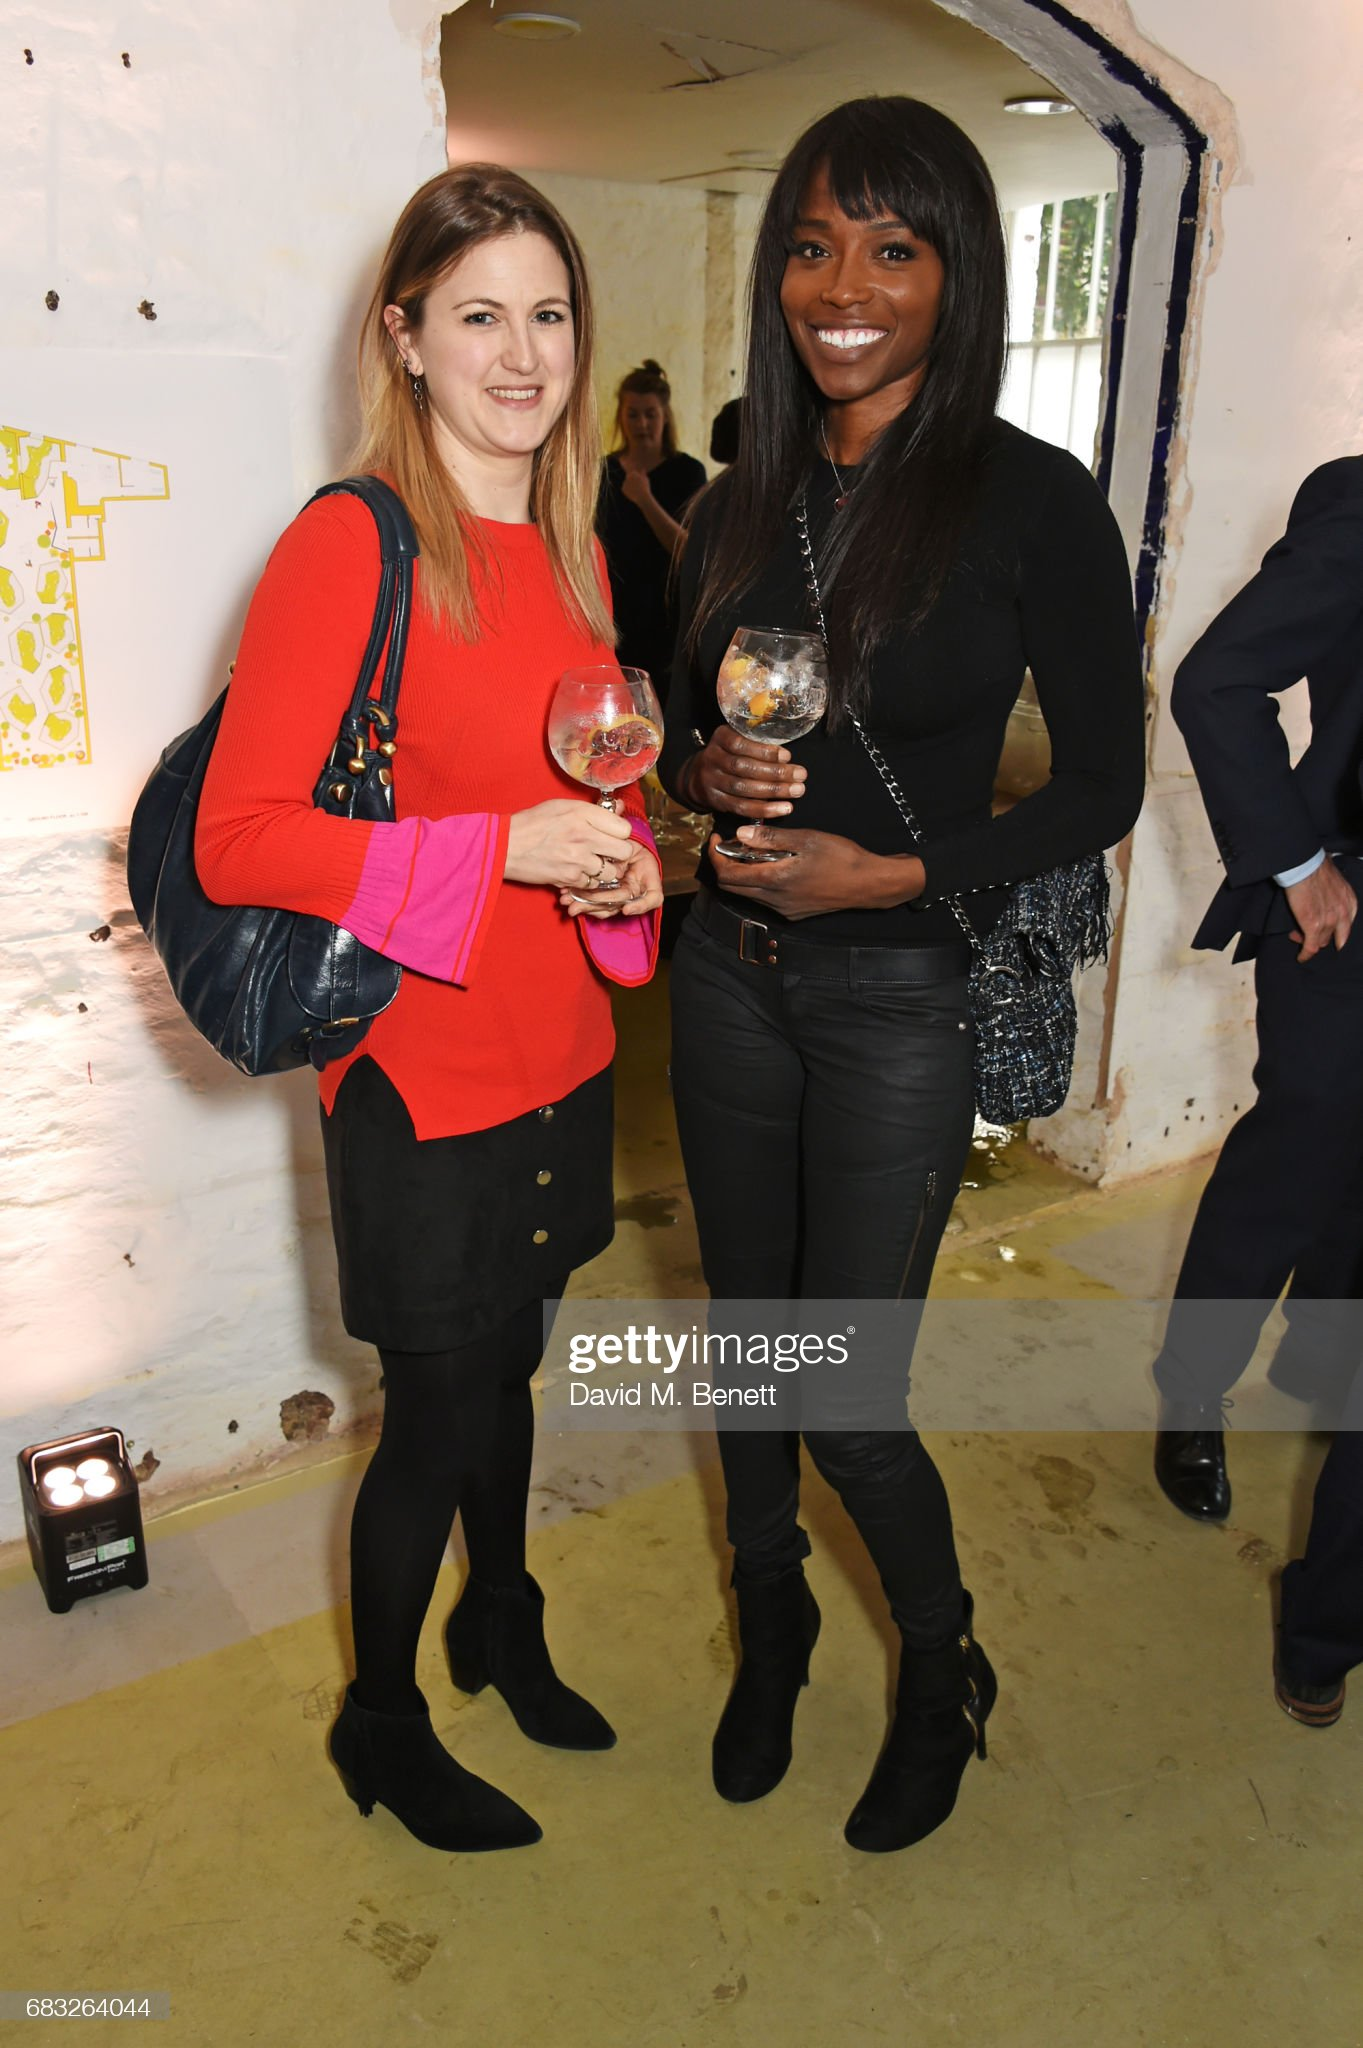 ¿Cuánto mide Lorraine Pascale? - Altura - Real height Nicki-merivale-and-lorraine-pascale-attend-a-discussion-between-lord-picture-id683264044?s=2048x2048